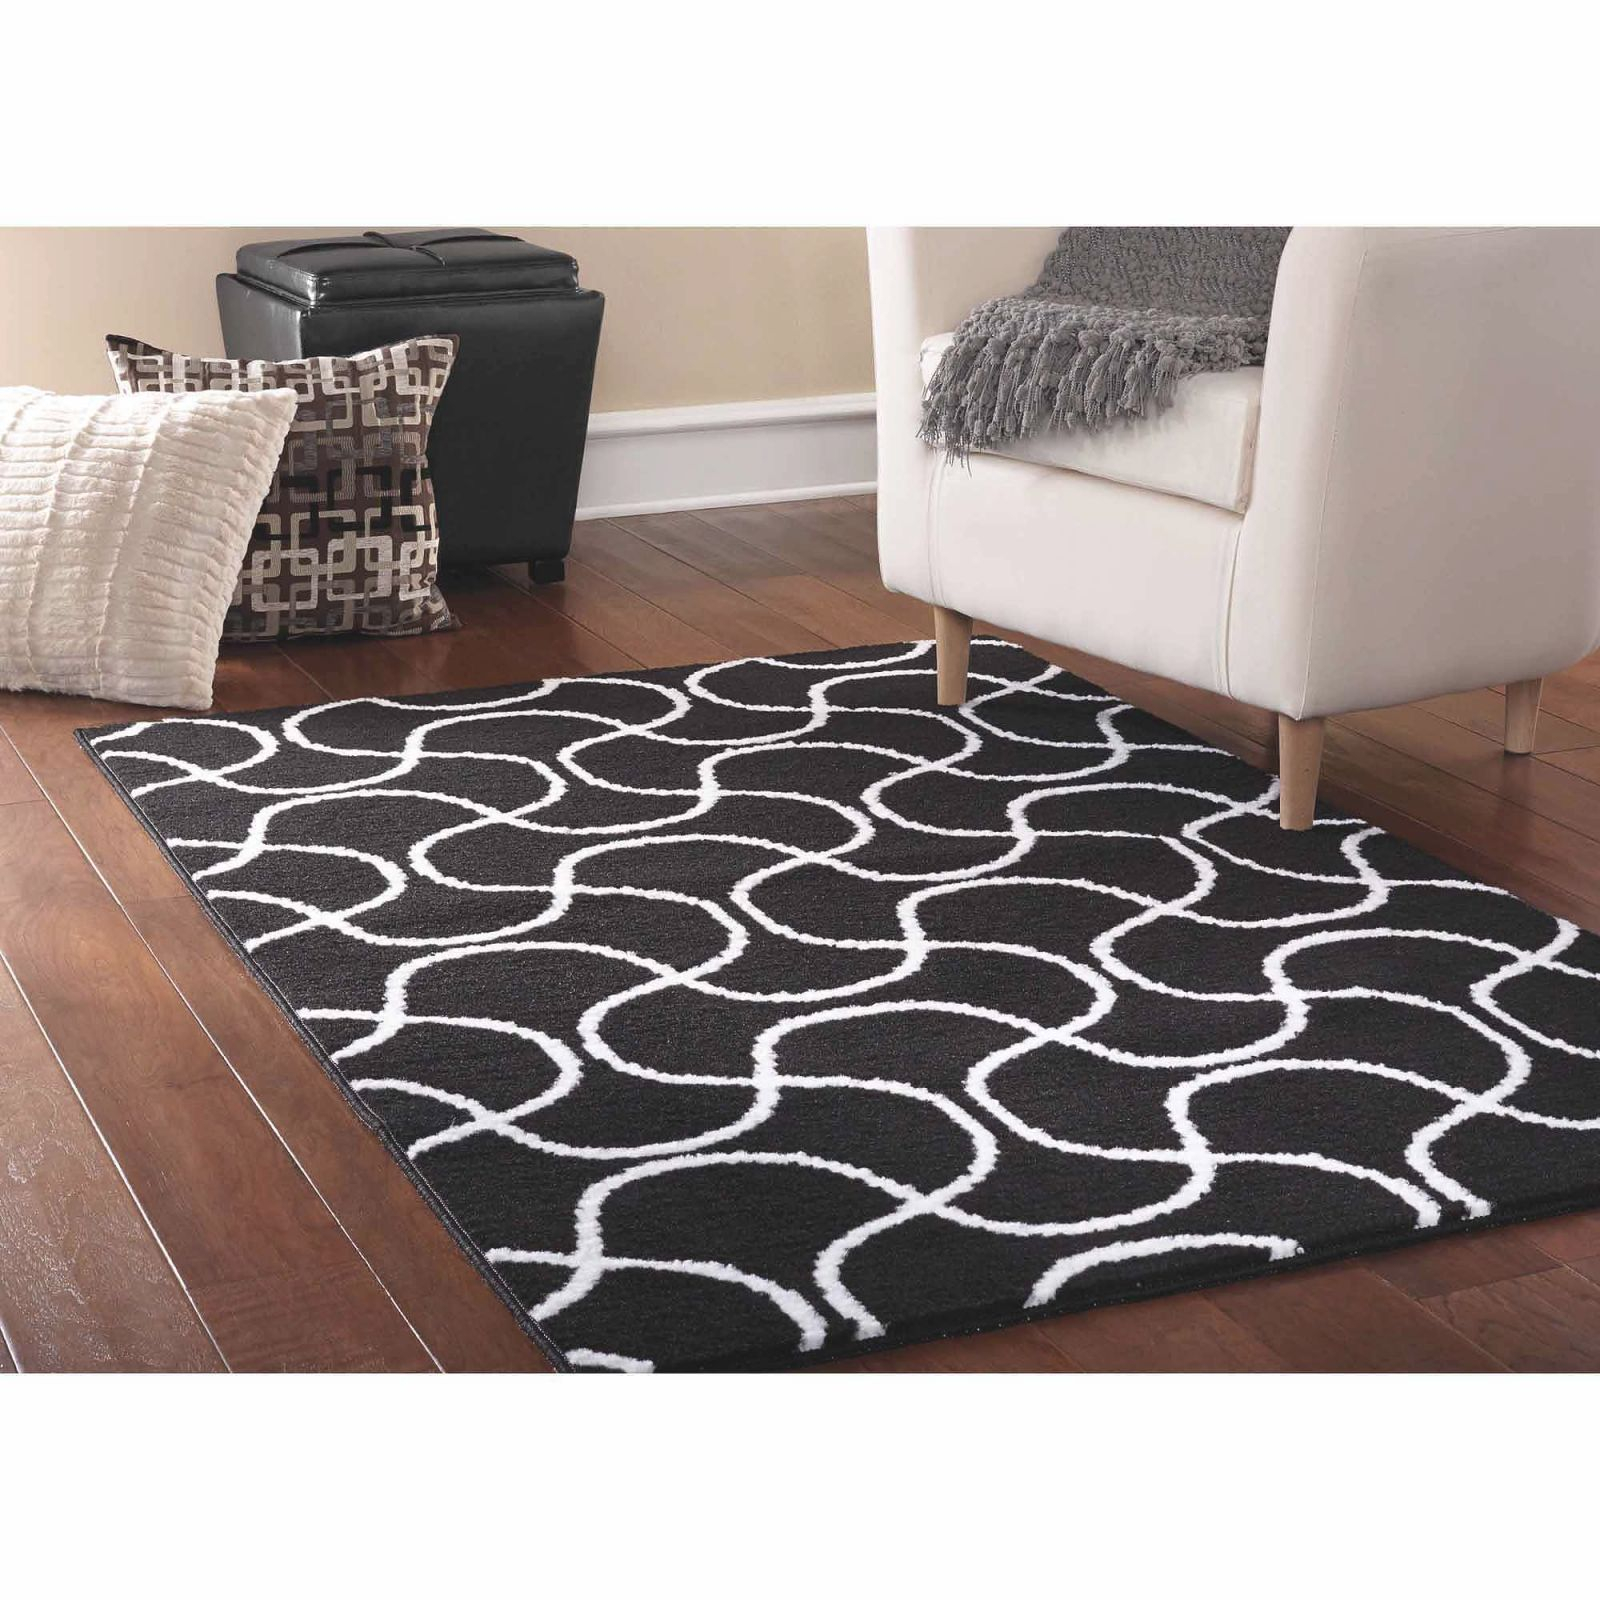 "Mainstays Drizzle Black/White 45""X66"" Abstract Indoor Area Rug within Awesome Ideas For Big Area Rugs For Living Room"